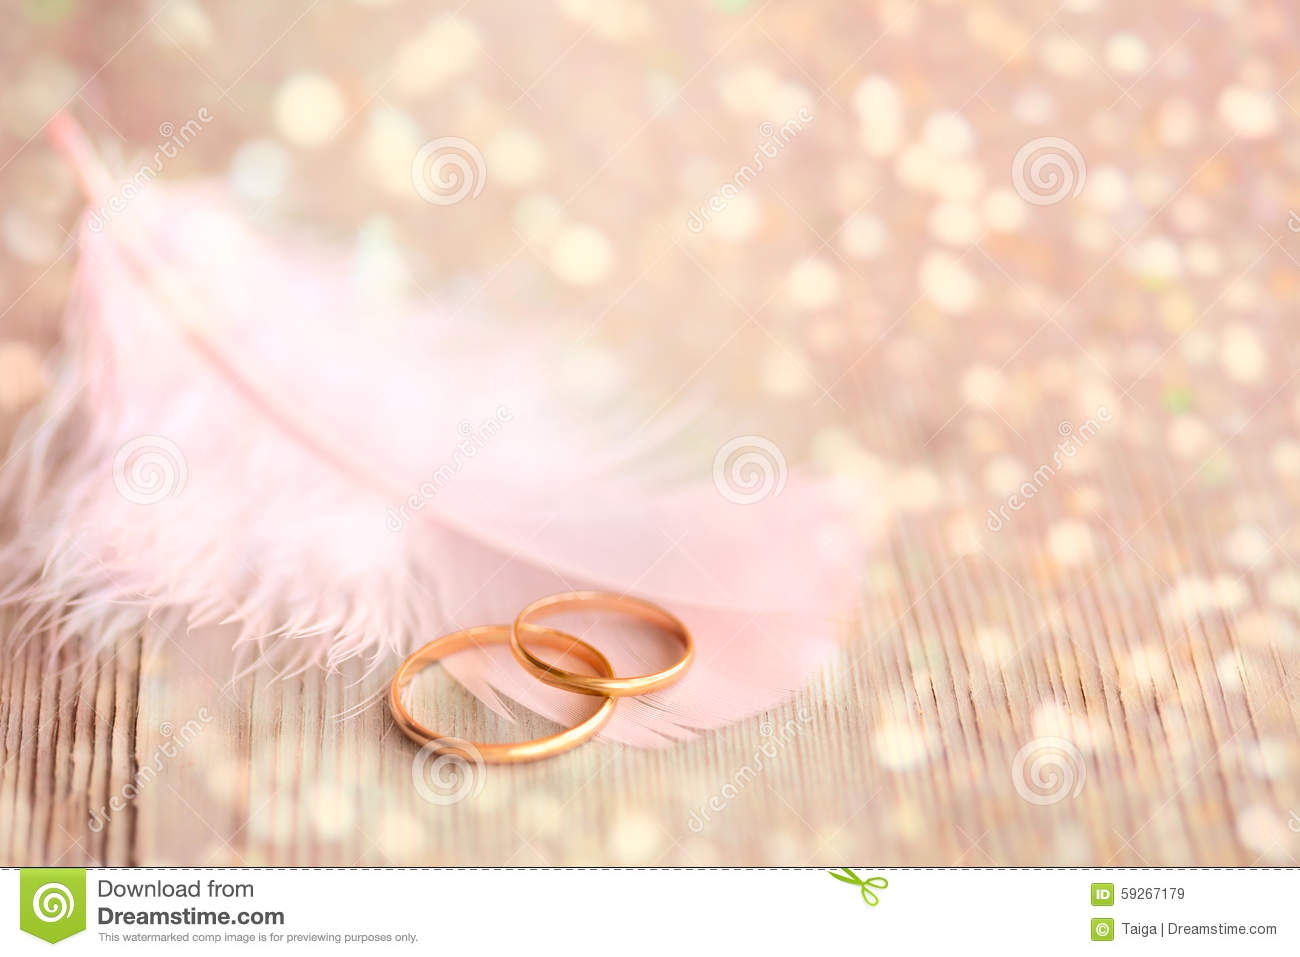 Ring Ceremony Hd Wallpaper Wedding Background With Gold Rings Pink Feather And